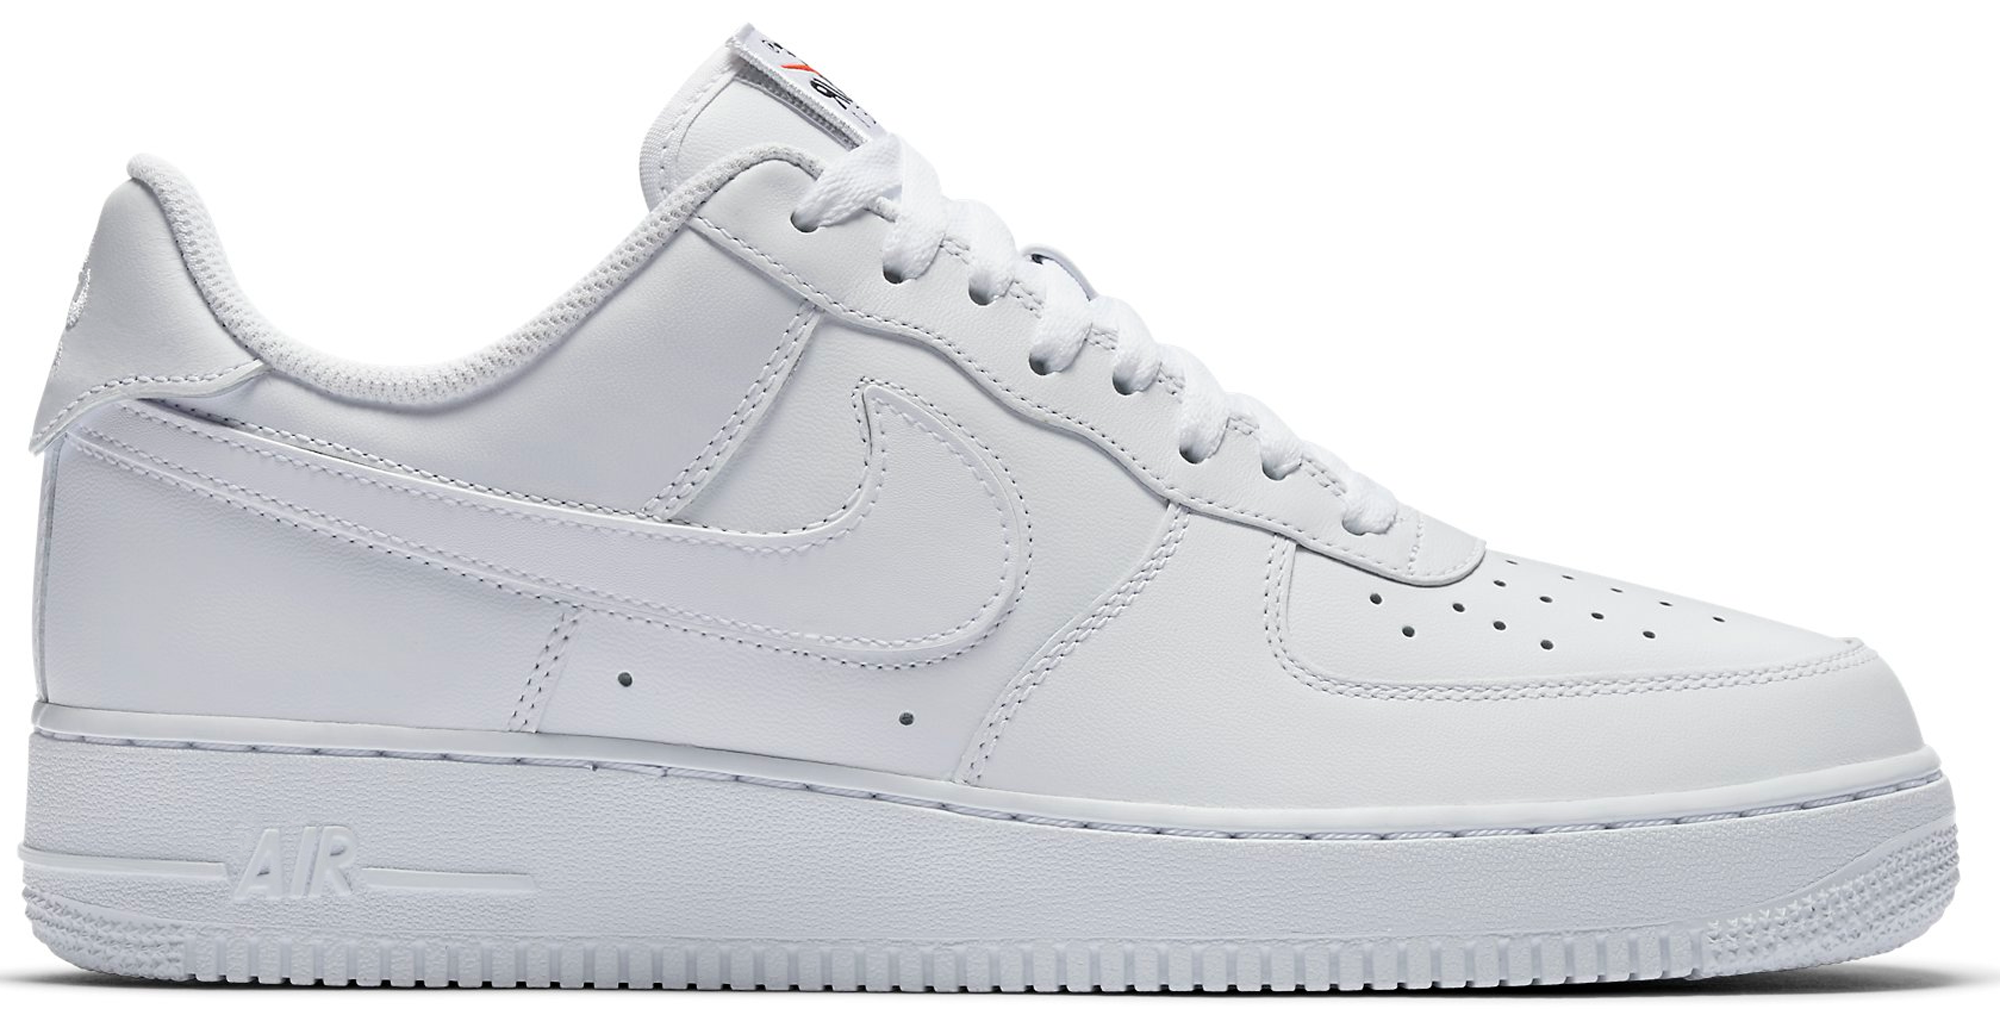 nike air force 1 all star for sale